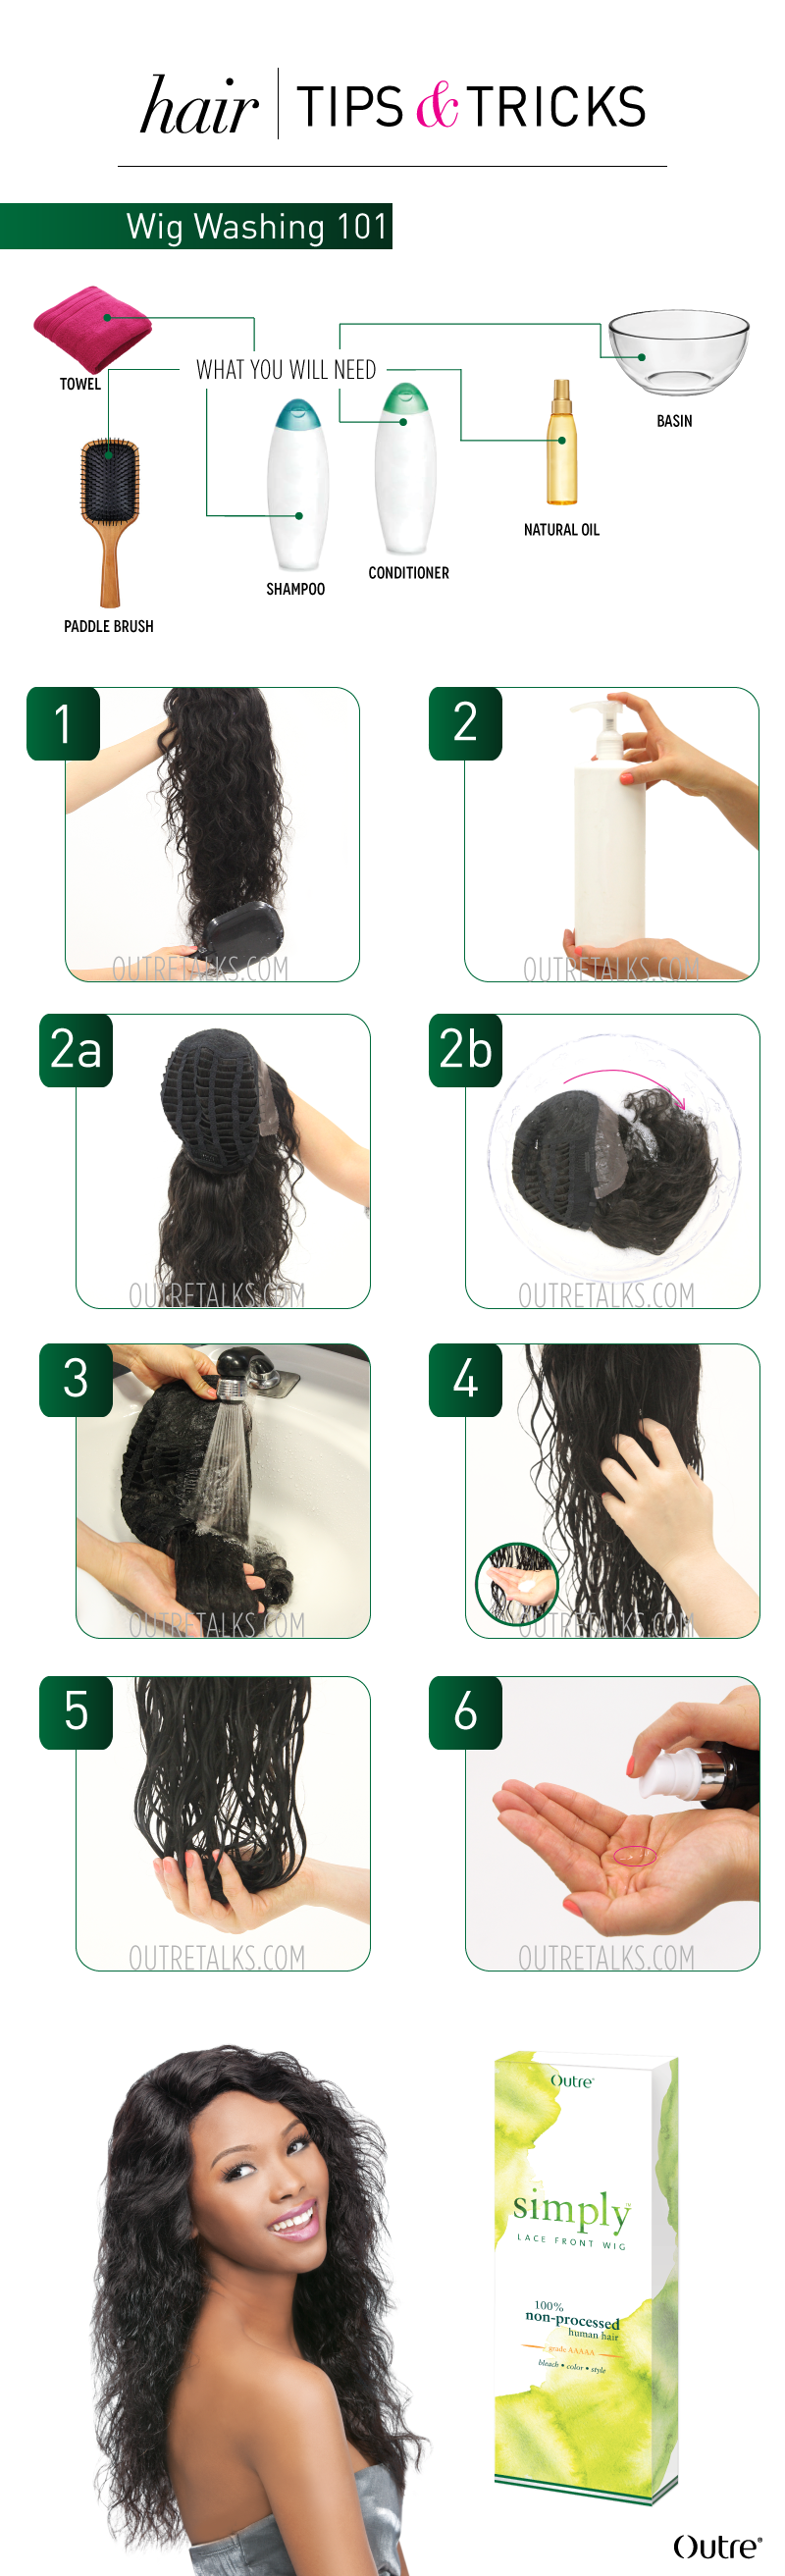 Wigs 101 How To Wash A Human Hair Wig Human Hair Wigs Wig Hairstyles Diy Wig